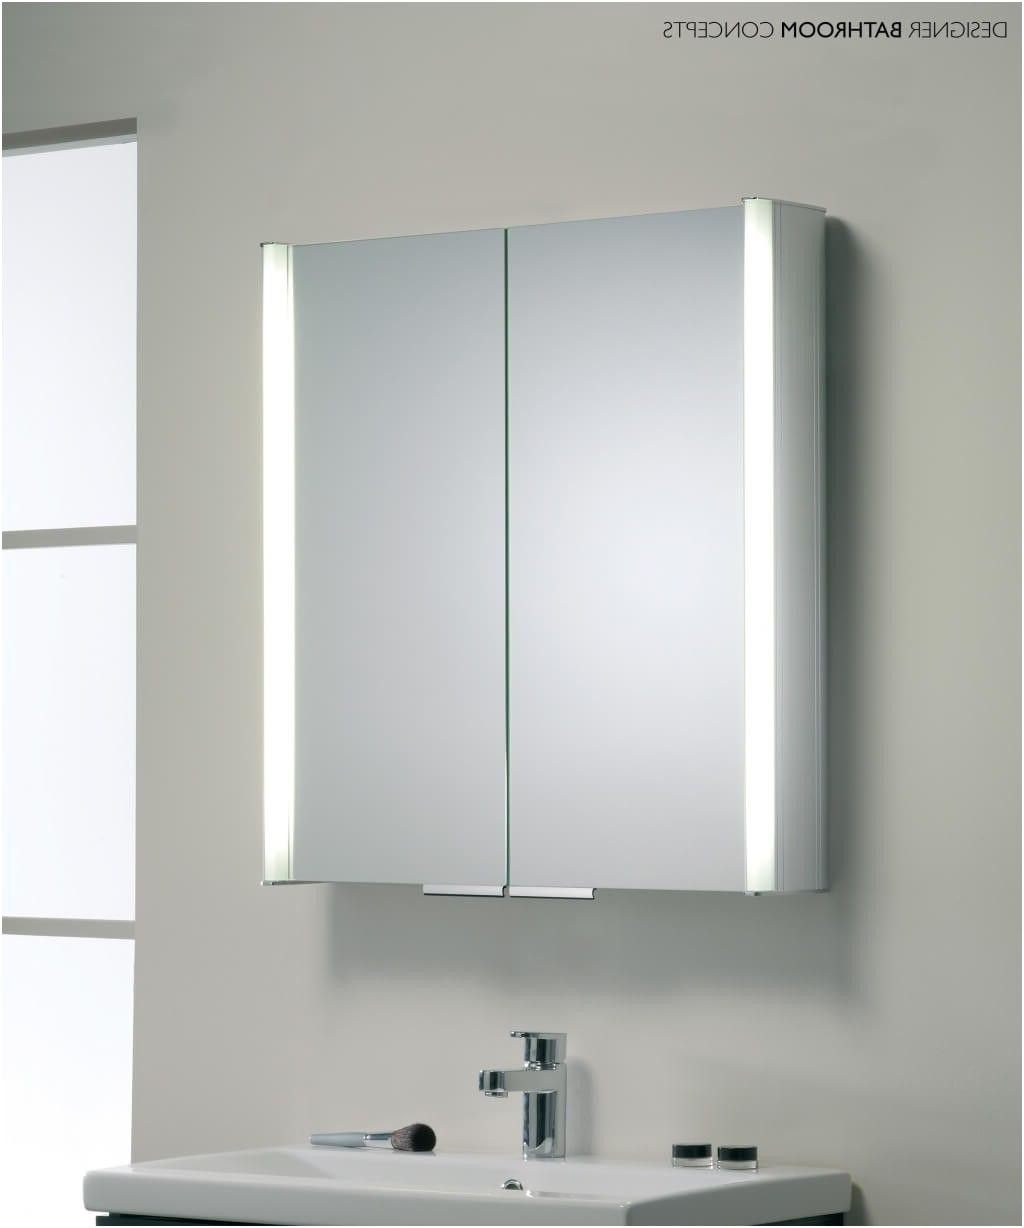 bathroom mirror cabinet with shaver socket harpsounds from ...